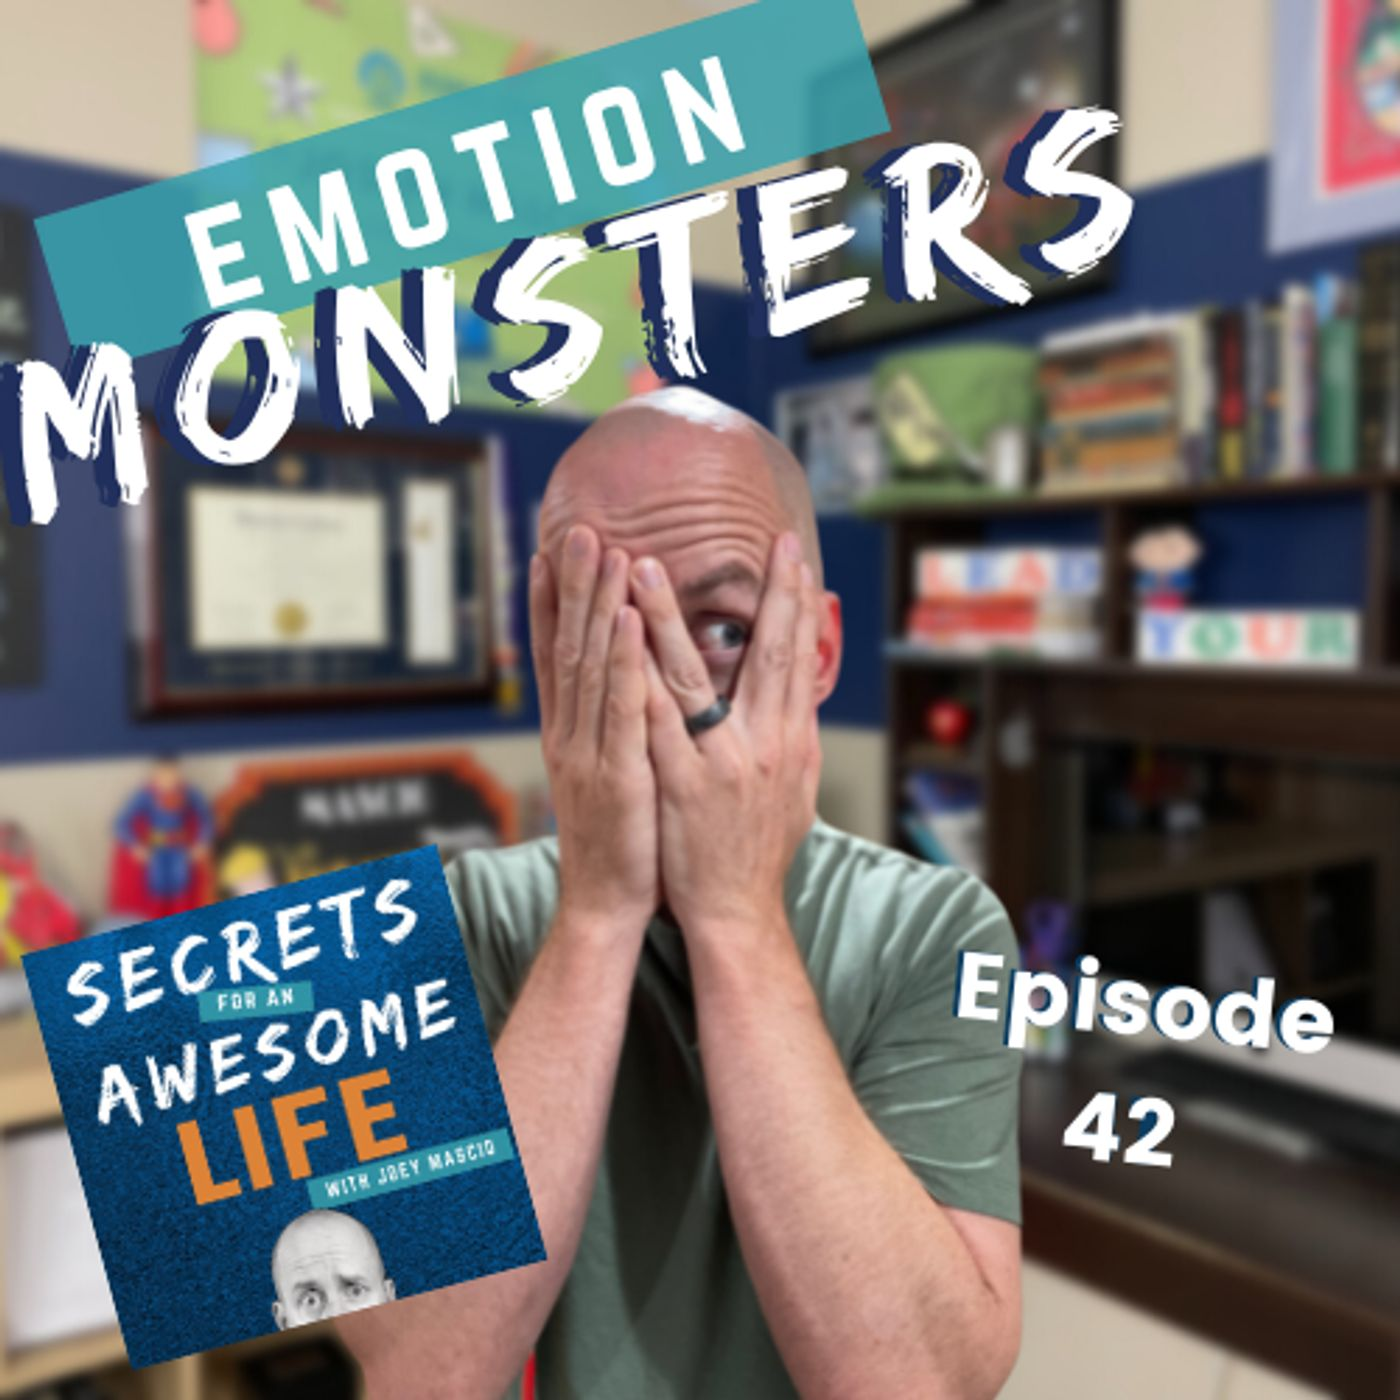 Emotion Monsters